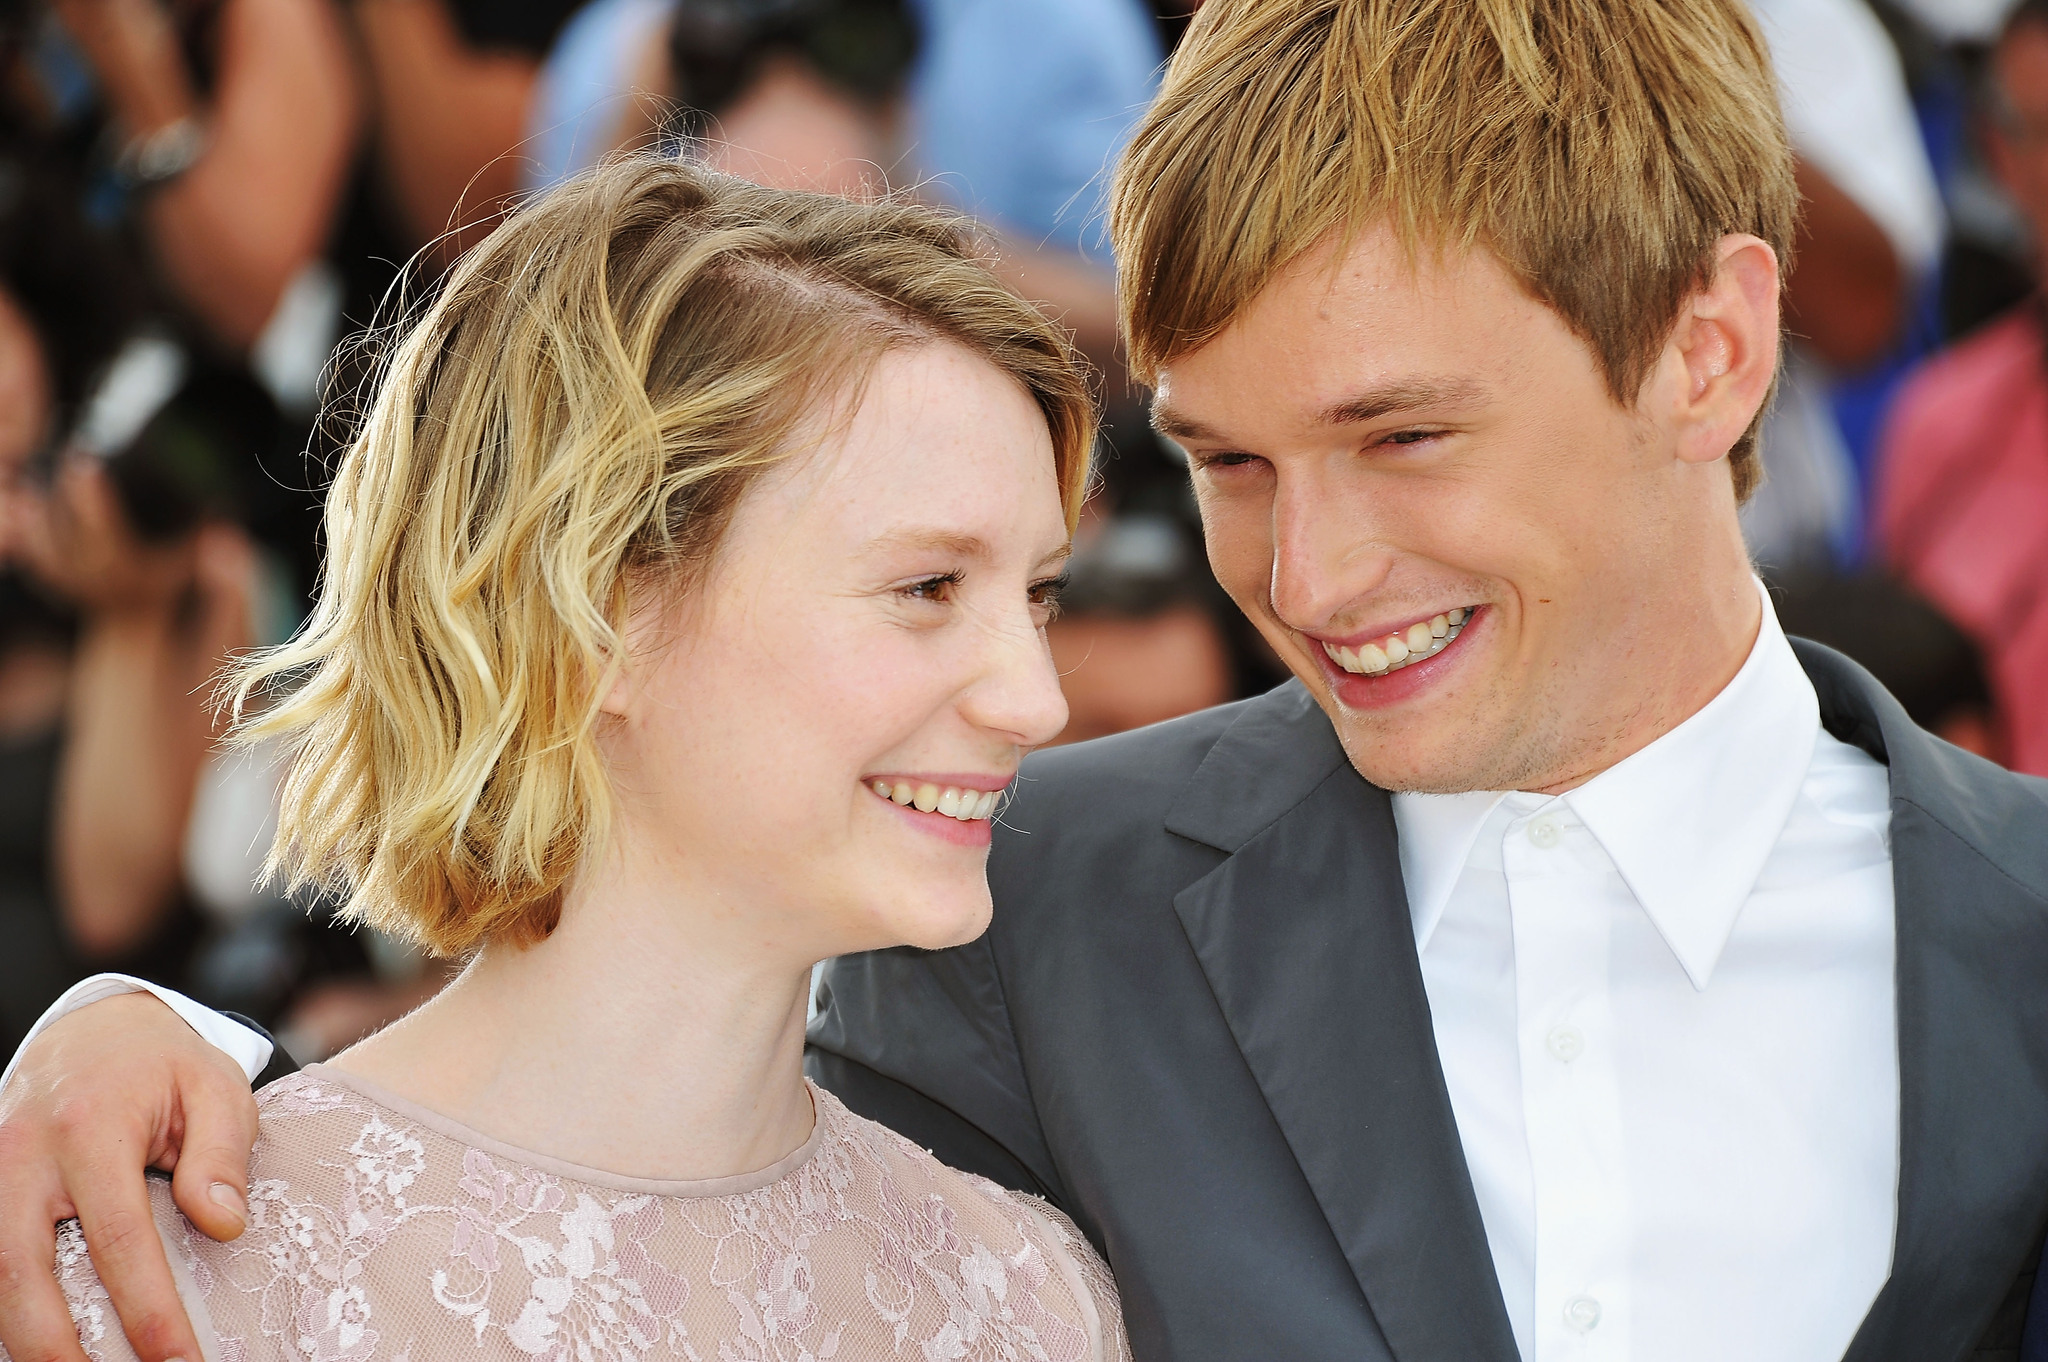 Henry Hopper and Mia Wasikowska at event of Restless (2011)